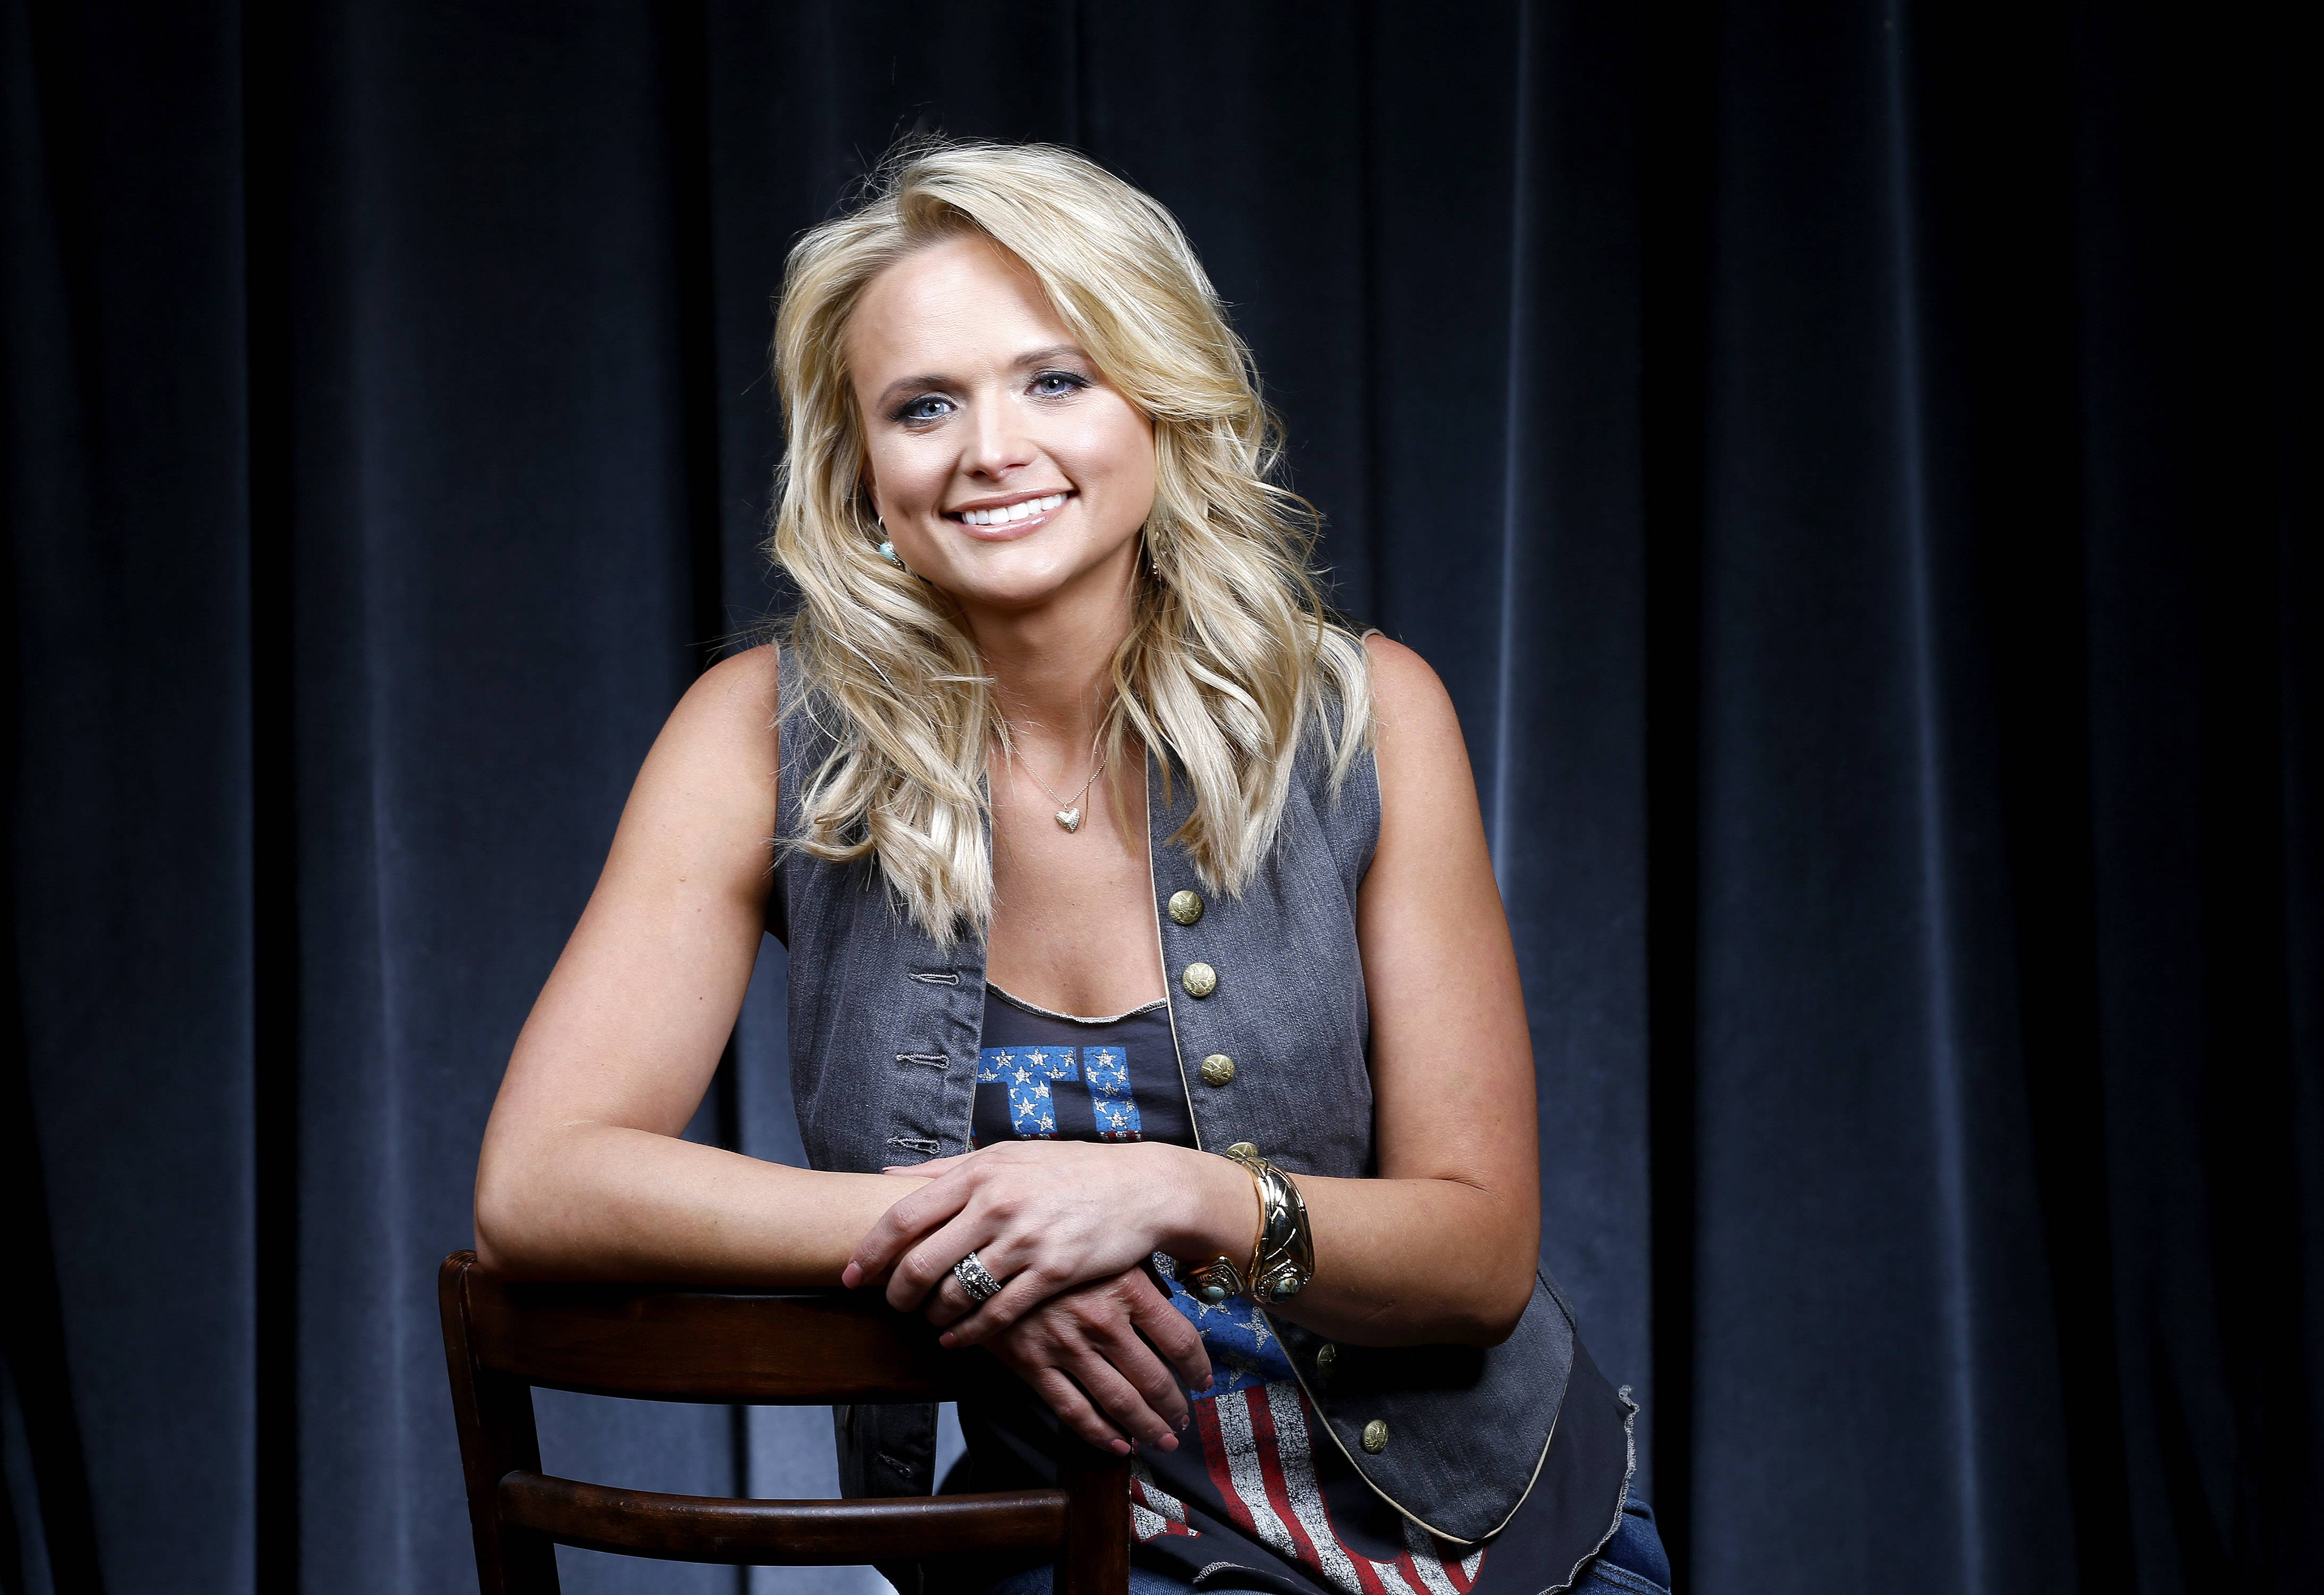 Miranda Lambert leads the Country Music Television nominations by pairing up with her husband, Blake Shelton, her girl group Pistol Annies and good friend Keith Urban.